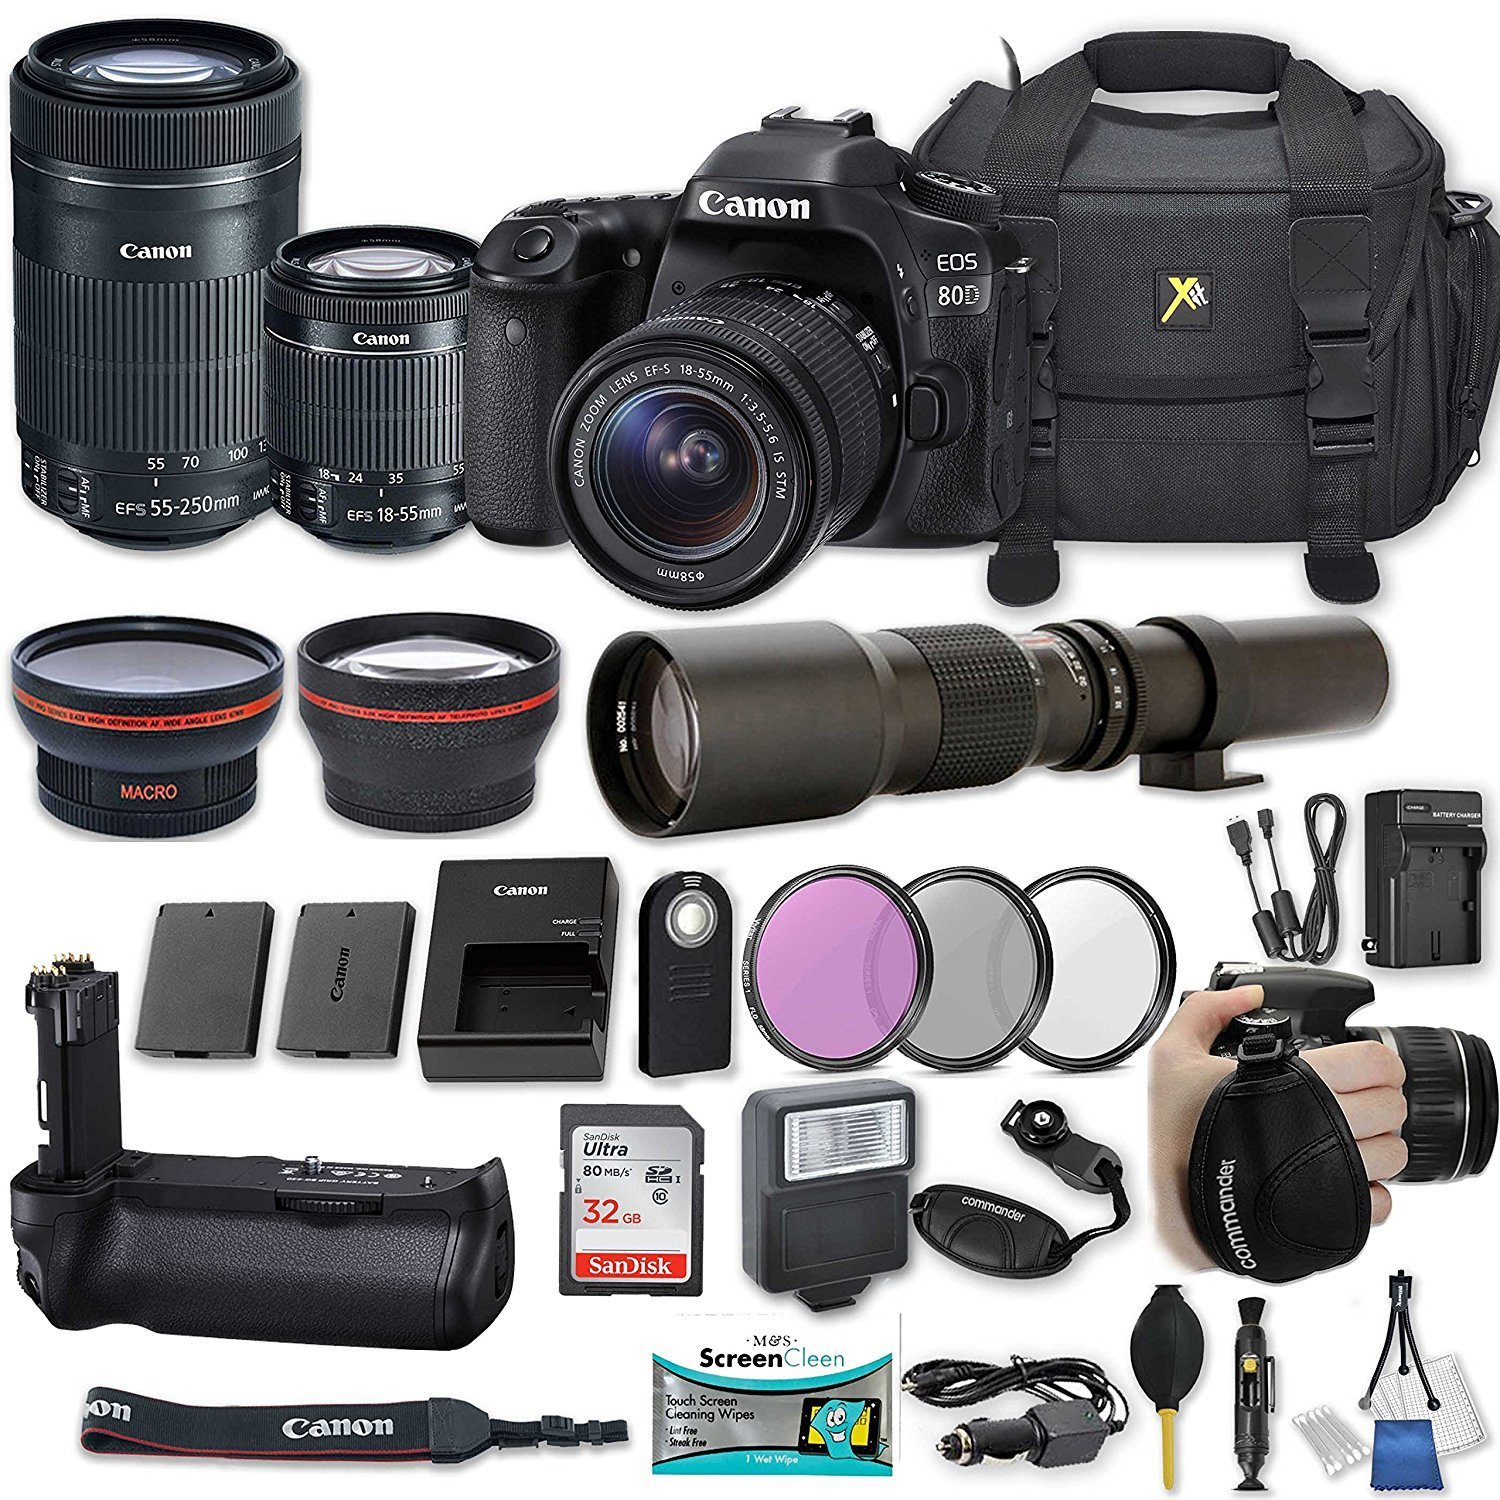 Canon EOS 80D DSLR Camera with EF-S 18-55mm f/3.5-5.6 IS STM Lens + EF-S 55-250mm f/4-5.6 IS STM Lens + 500mm Preset Lens + 32GB Sandisk SD + Slave Flash + Battery Grip + Filter + More by 33rd Street